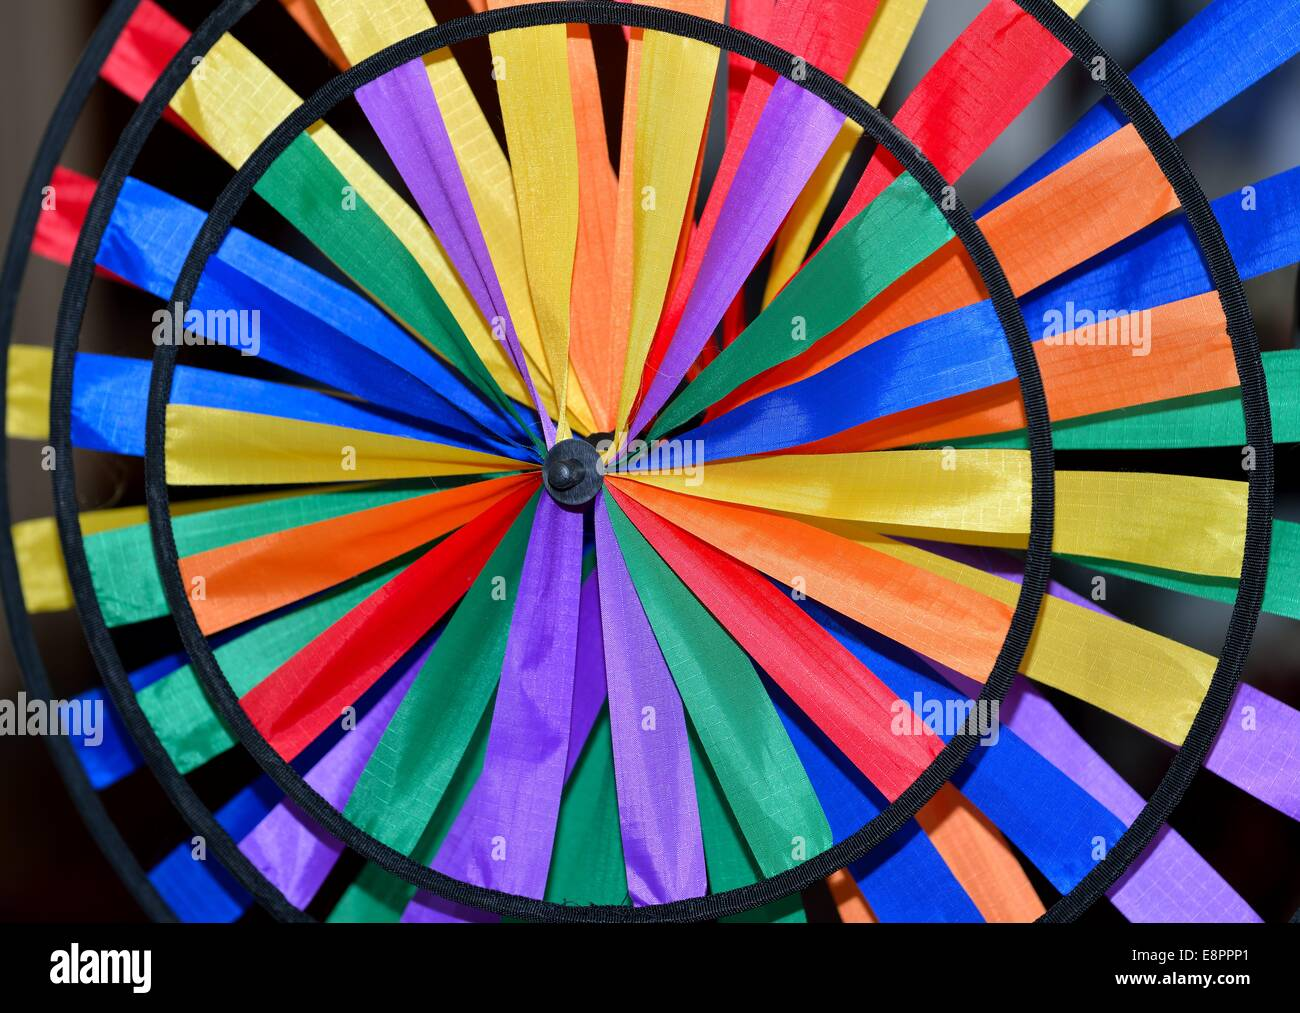 Color spinner - Stock Image